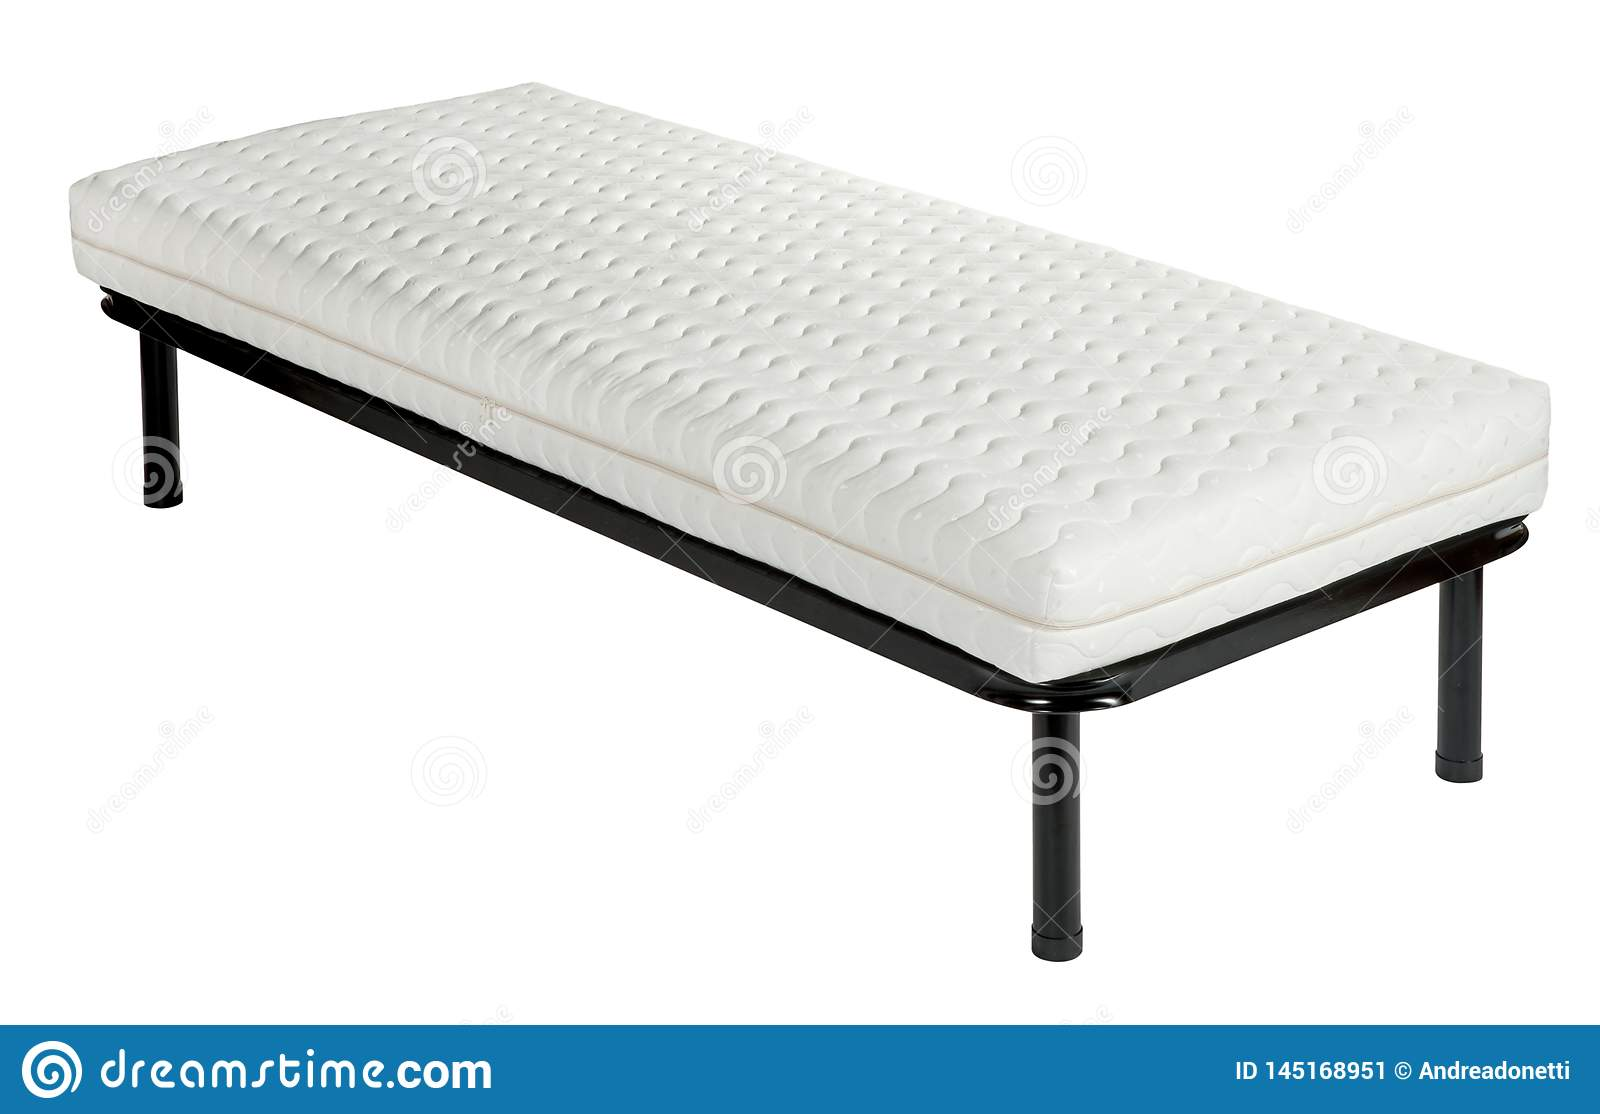 Orthopaedic Bed Set With Metal Frame And Mattress Stock Image